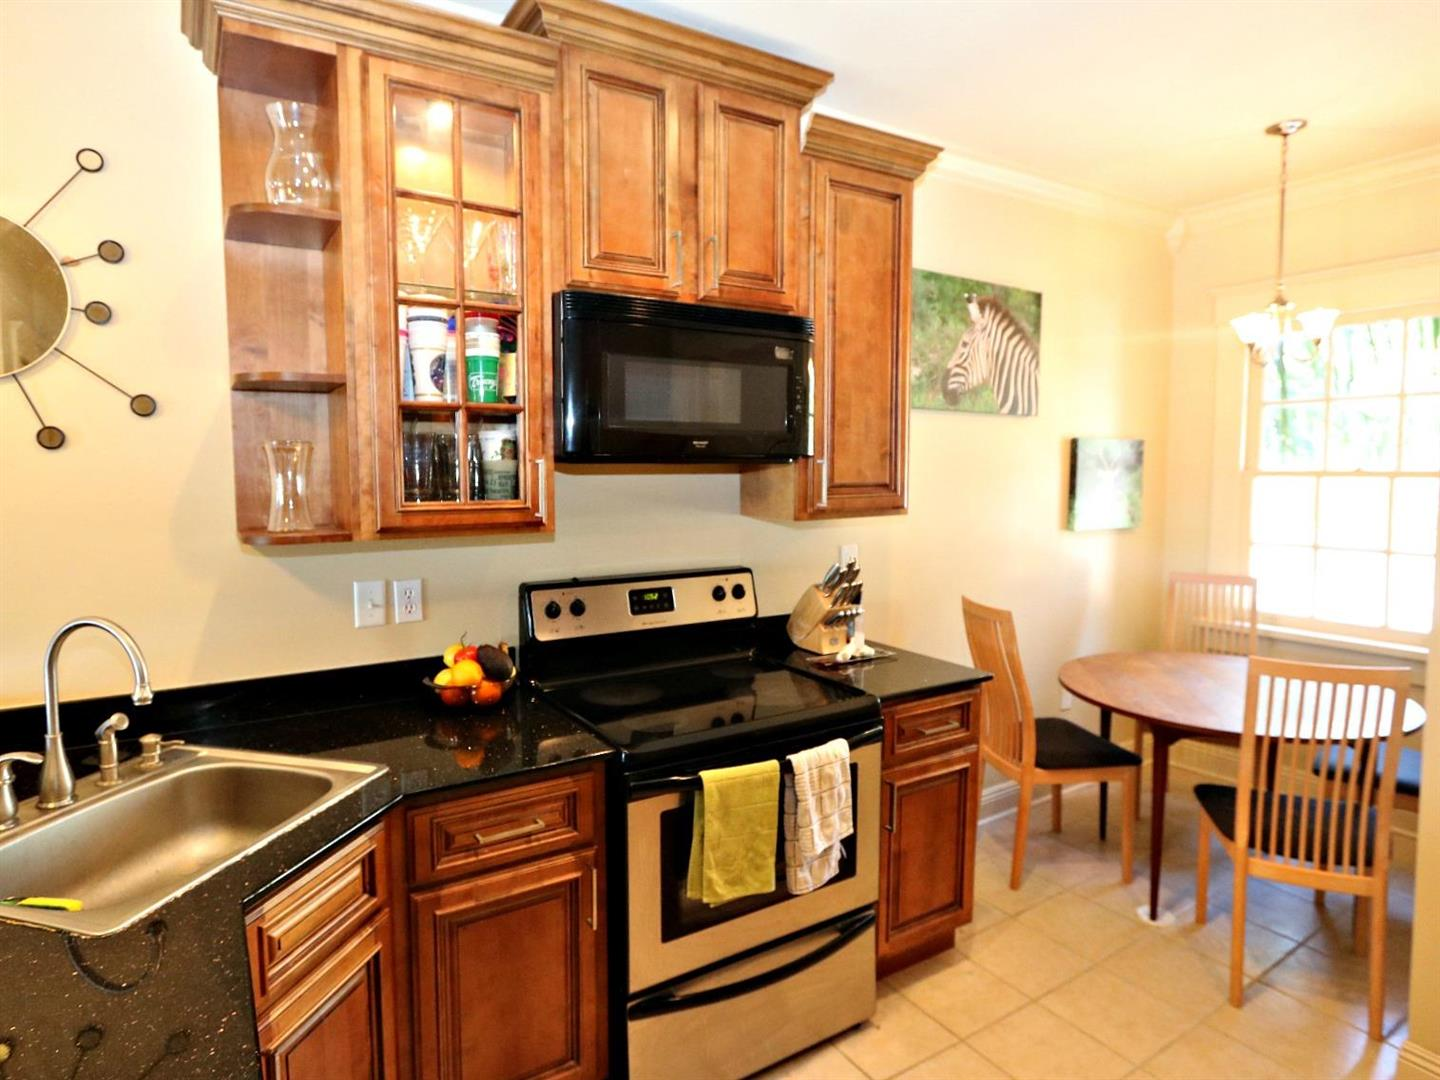 3322UpperlineCondo,BreakfastArea.jpg